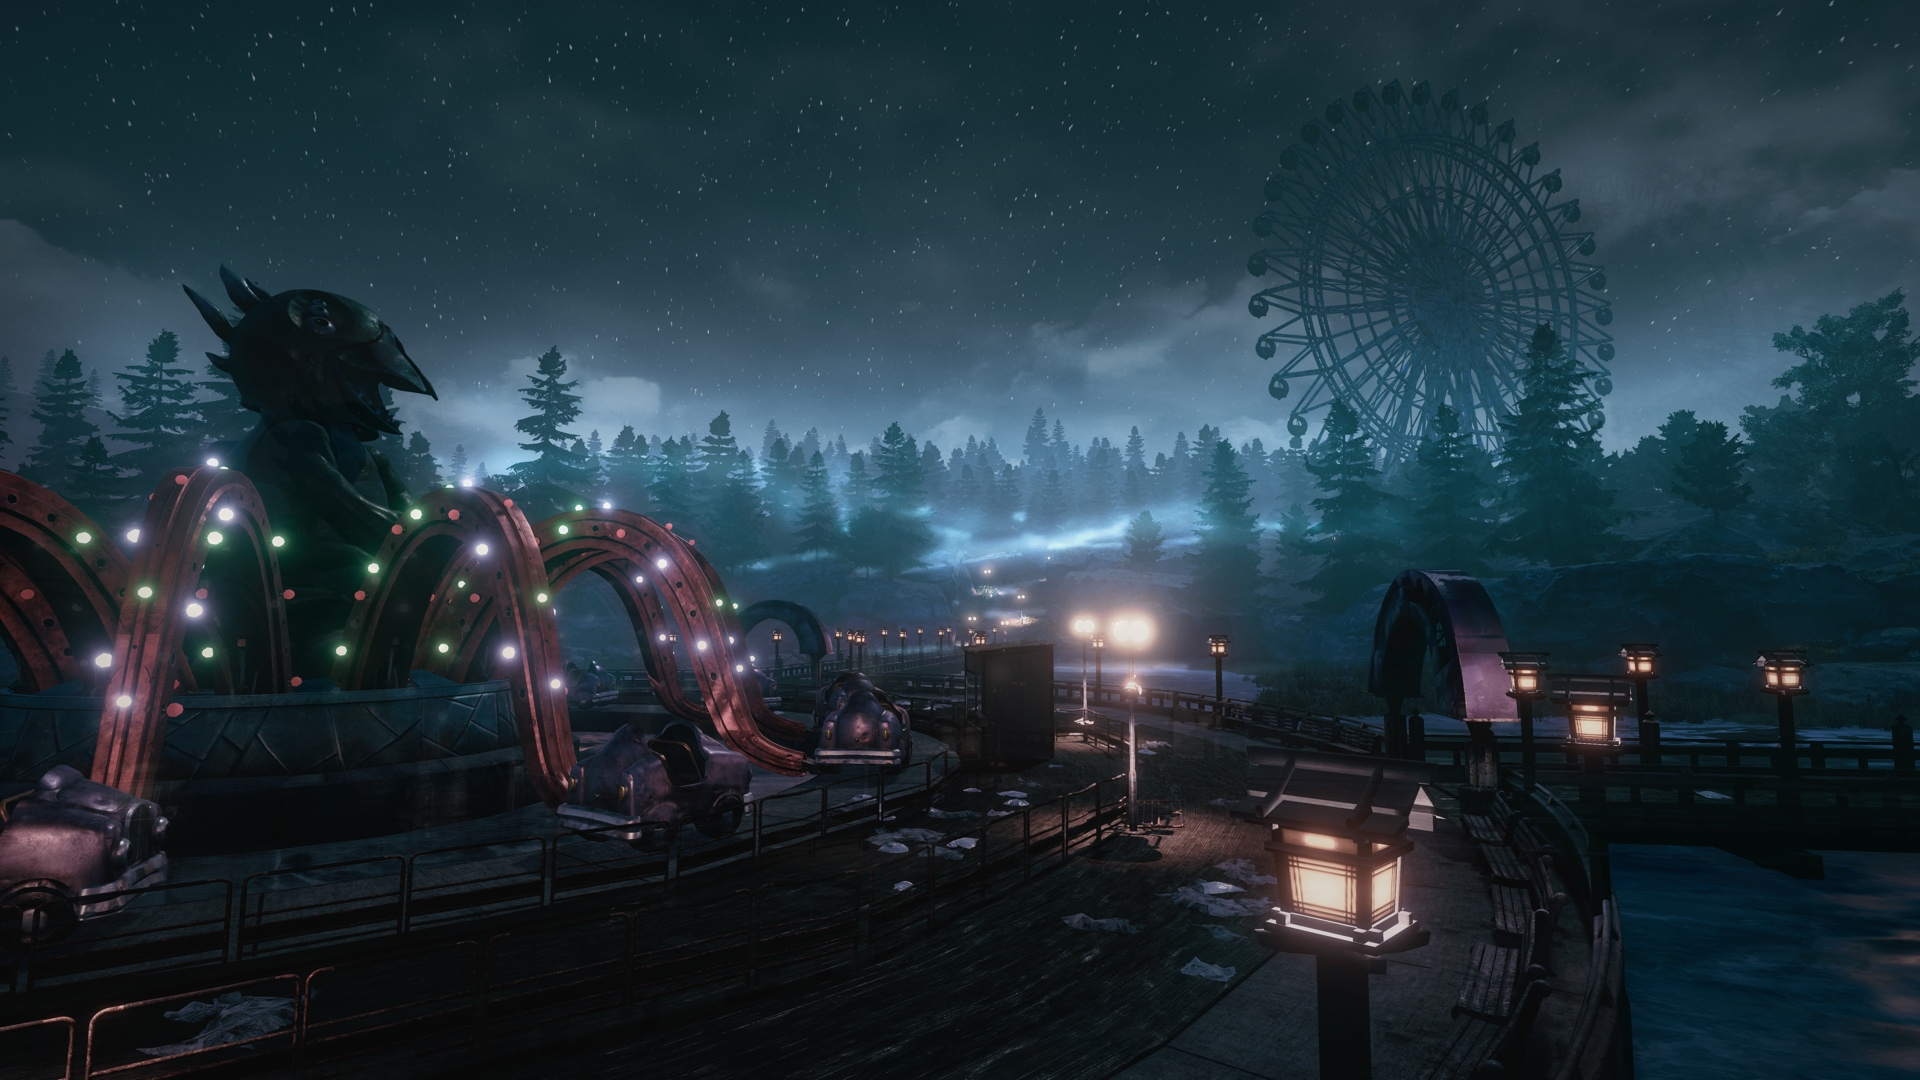 The Park Screenshot 2 3240.0 Terrifying Horror Game The Park Gets PS4/Xbox One Release Date